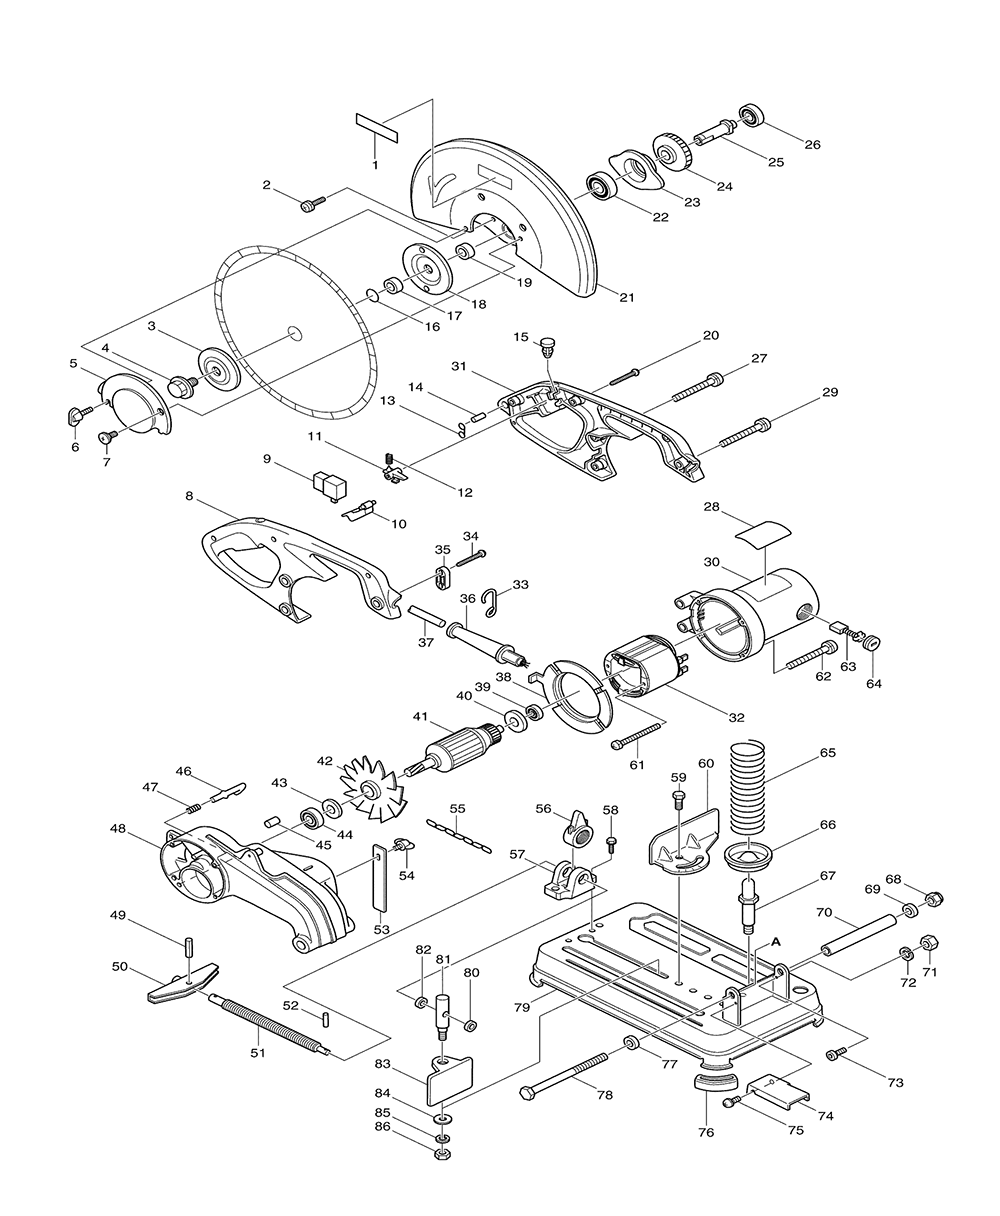 Makita Ls Wiring Diagram on cub cadet diagrams, john deere diagrams, ge diagrams, hyundai diagrams, arrow diagrams, kubota diagrams, toro diagrams, kohler diagrams, honeywell diagrams, toyota diagrams, evolution diagrams, apple diagrams, husqvarna diagrams, mtd diagrams,